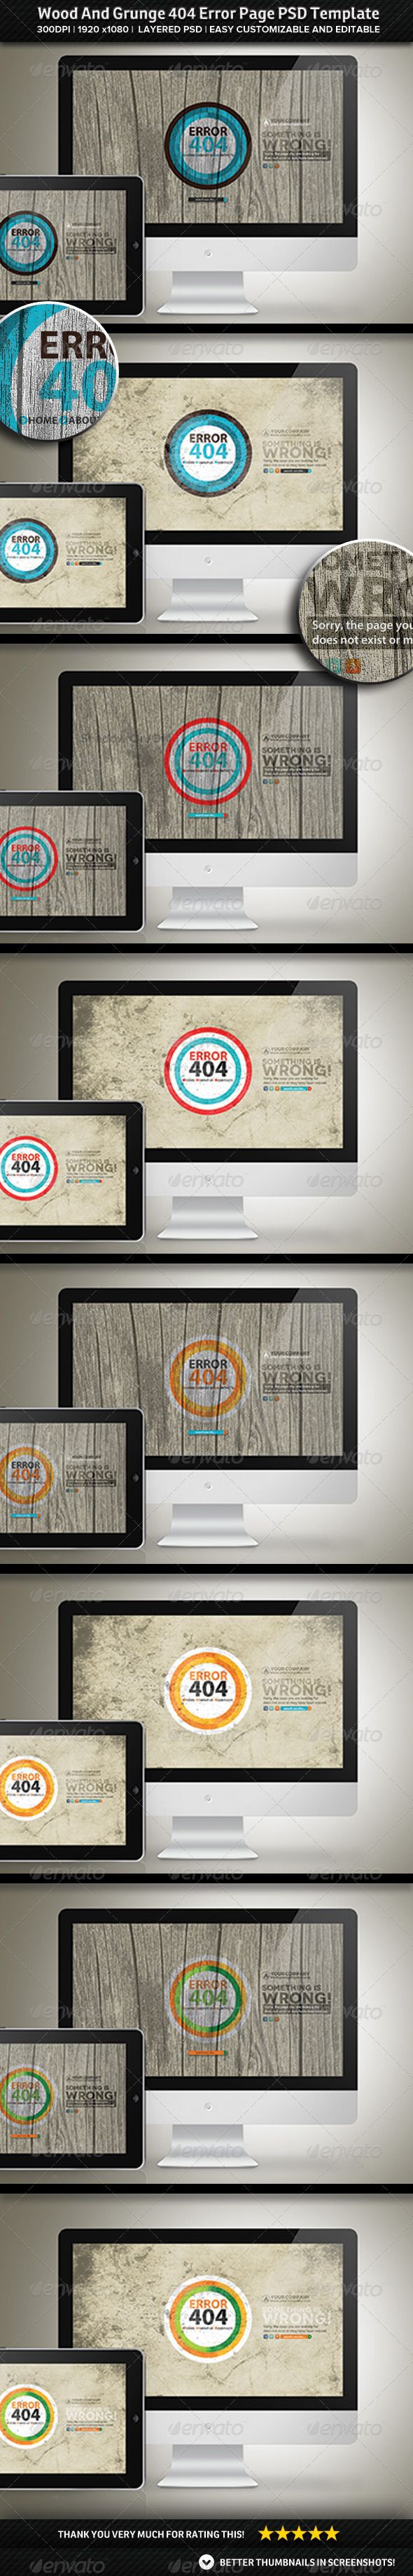 Wood And Grunge 404 Error Page PSD Template | Psd templates ...